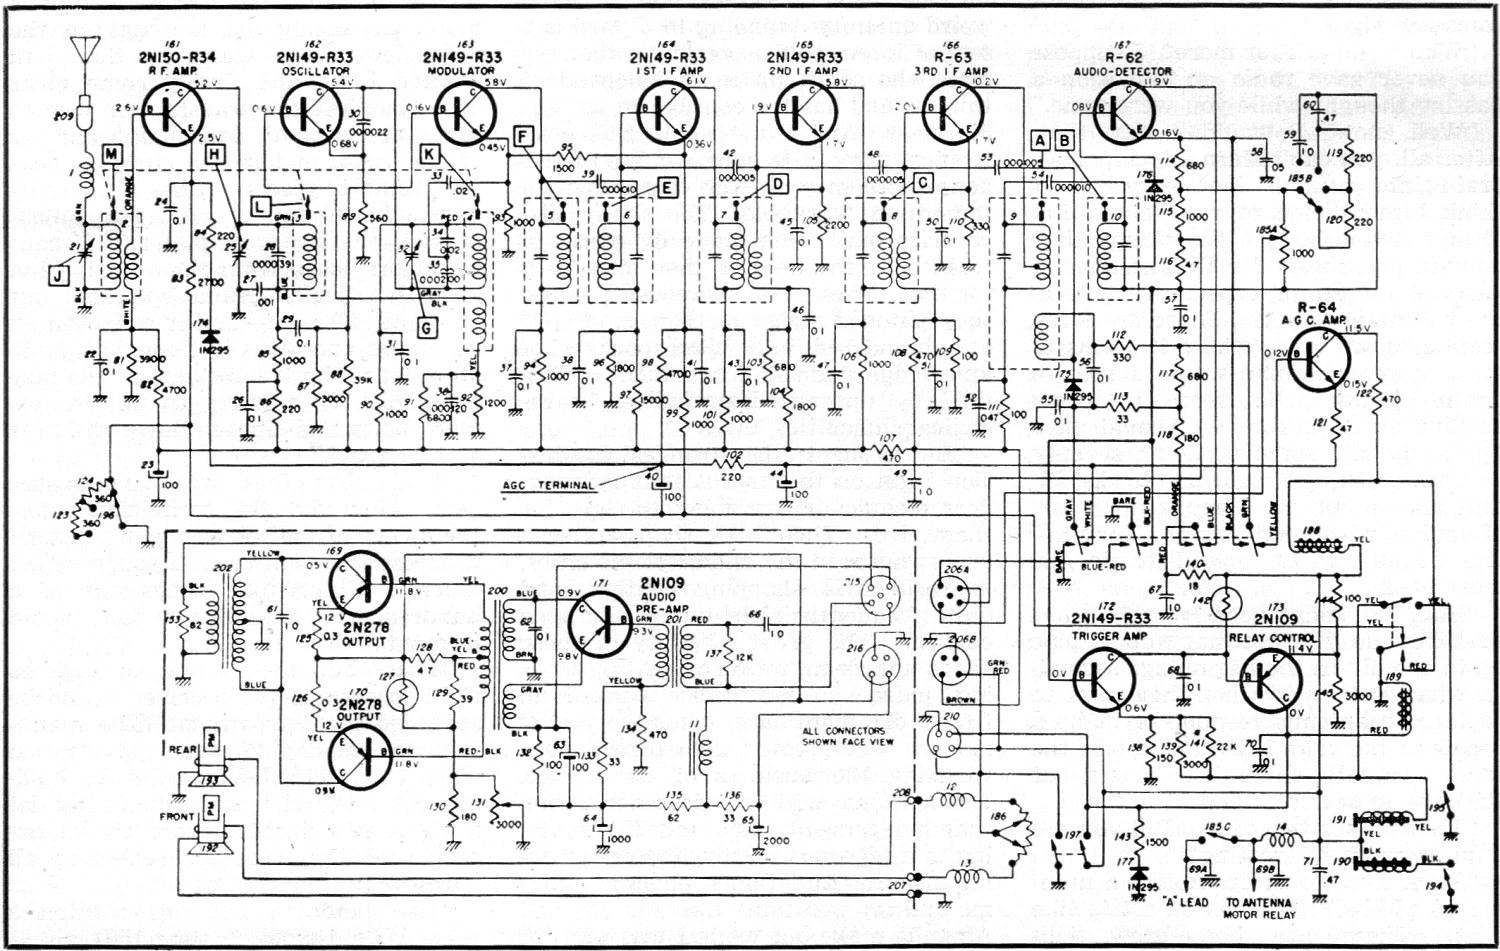 Car stereo schematics trusted wiring diagram delcos all transistor auto radio august 1957 radio tv news rf cafe car stereo symbols car stereo schematics asfbconference2016 Choice Image